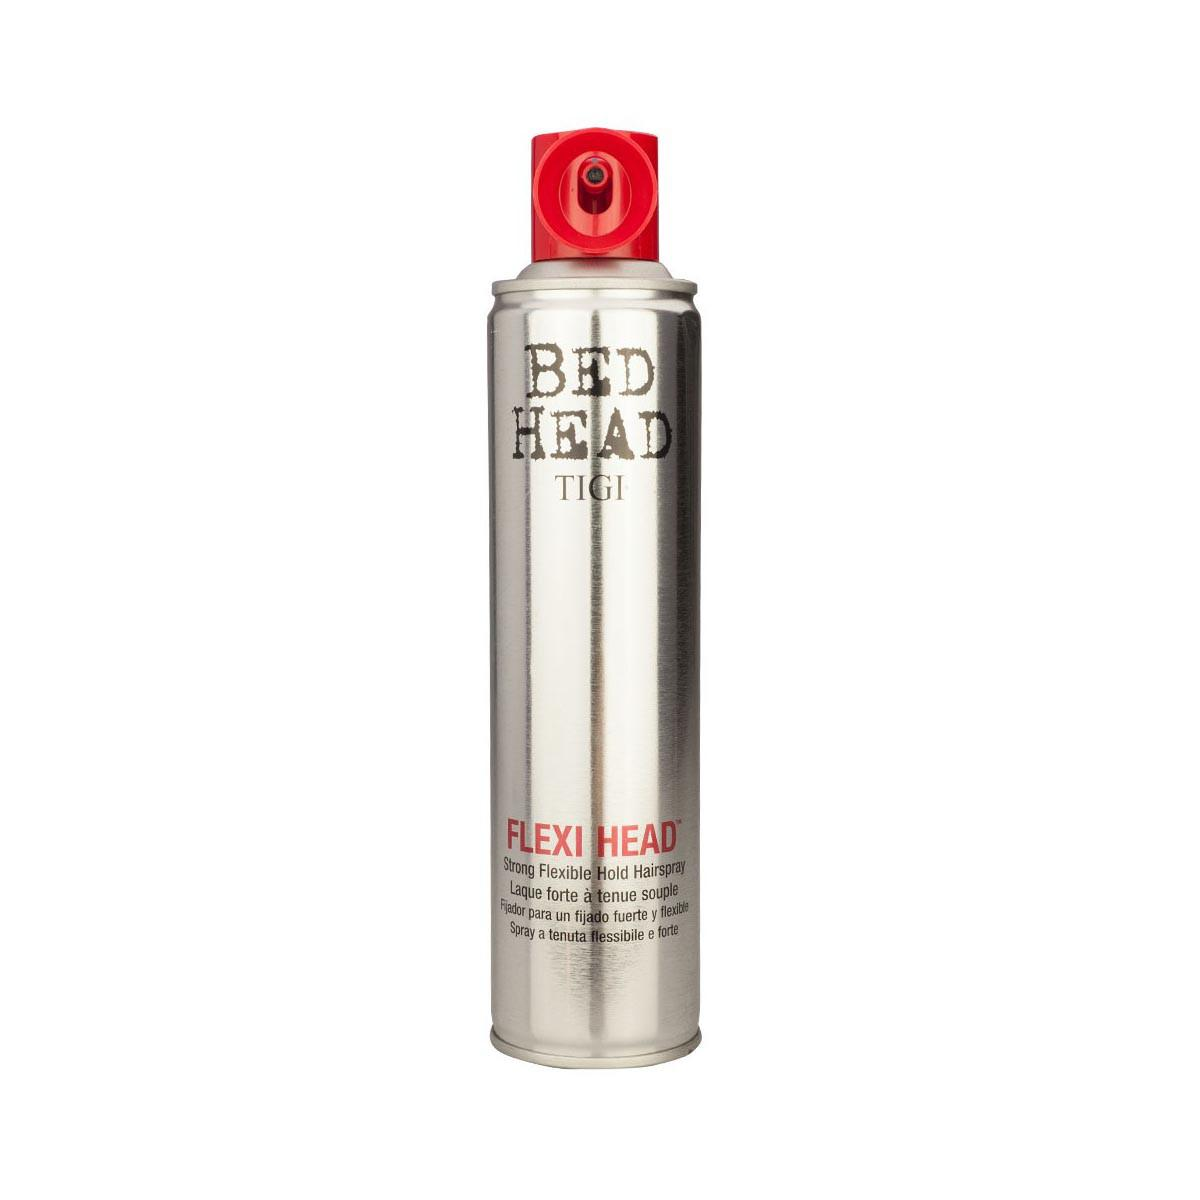 Tigi Bed Head Flexi Head Strong Hairspray 385 ml